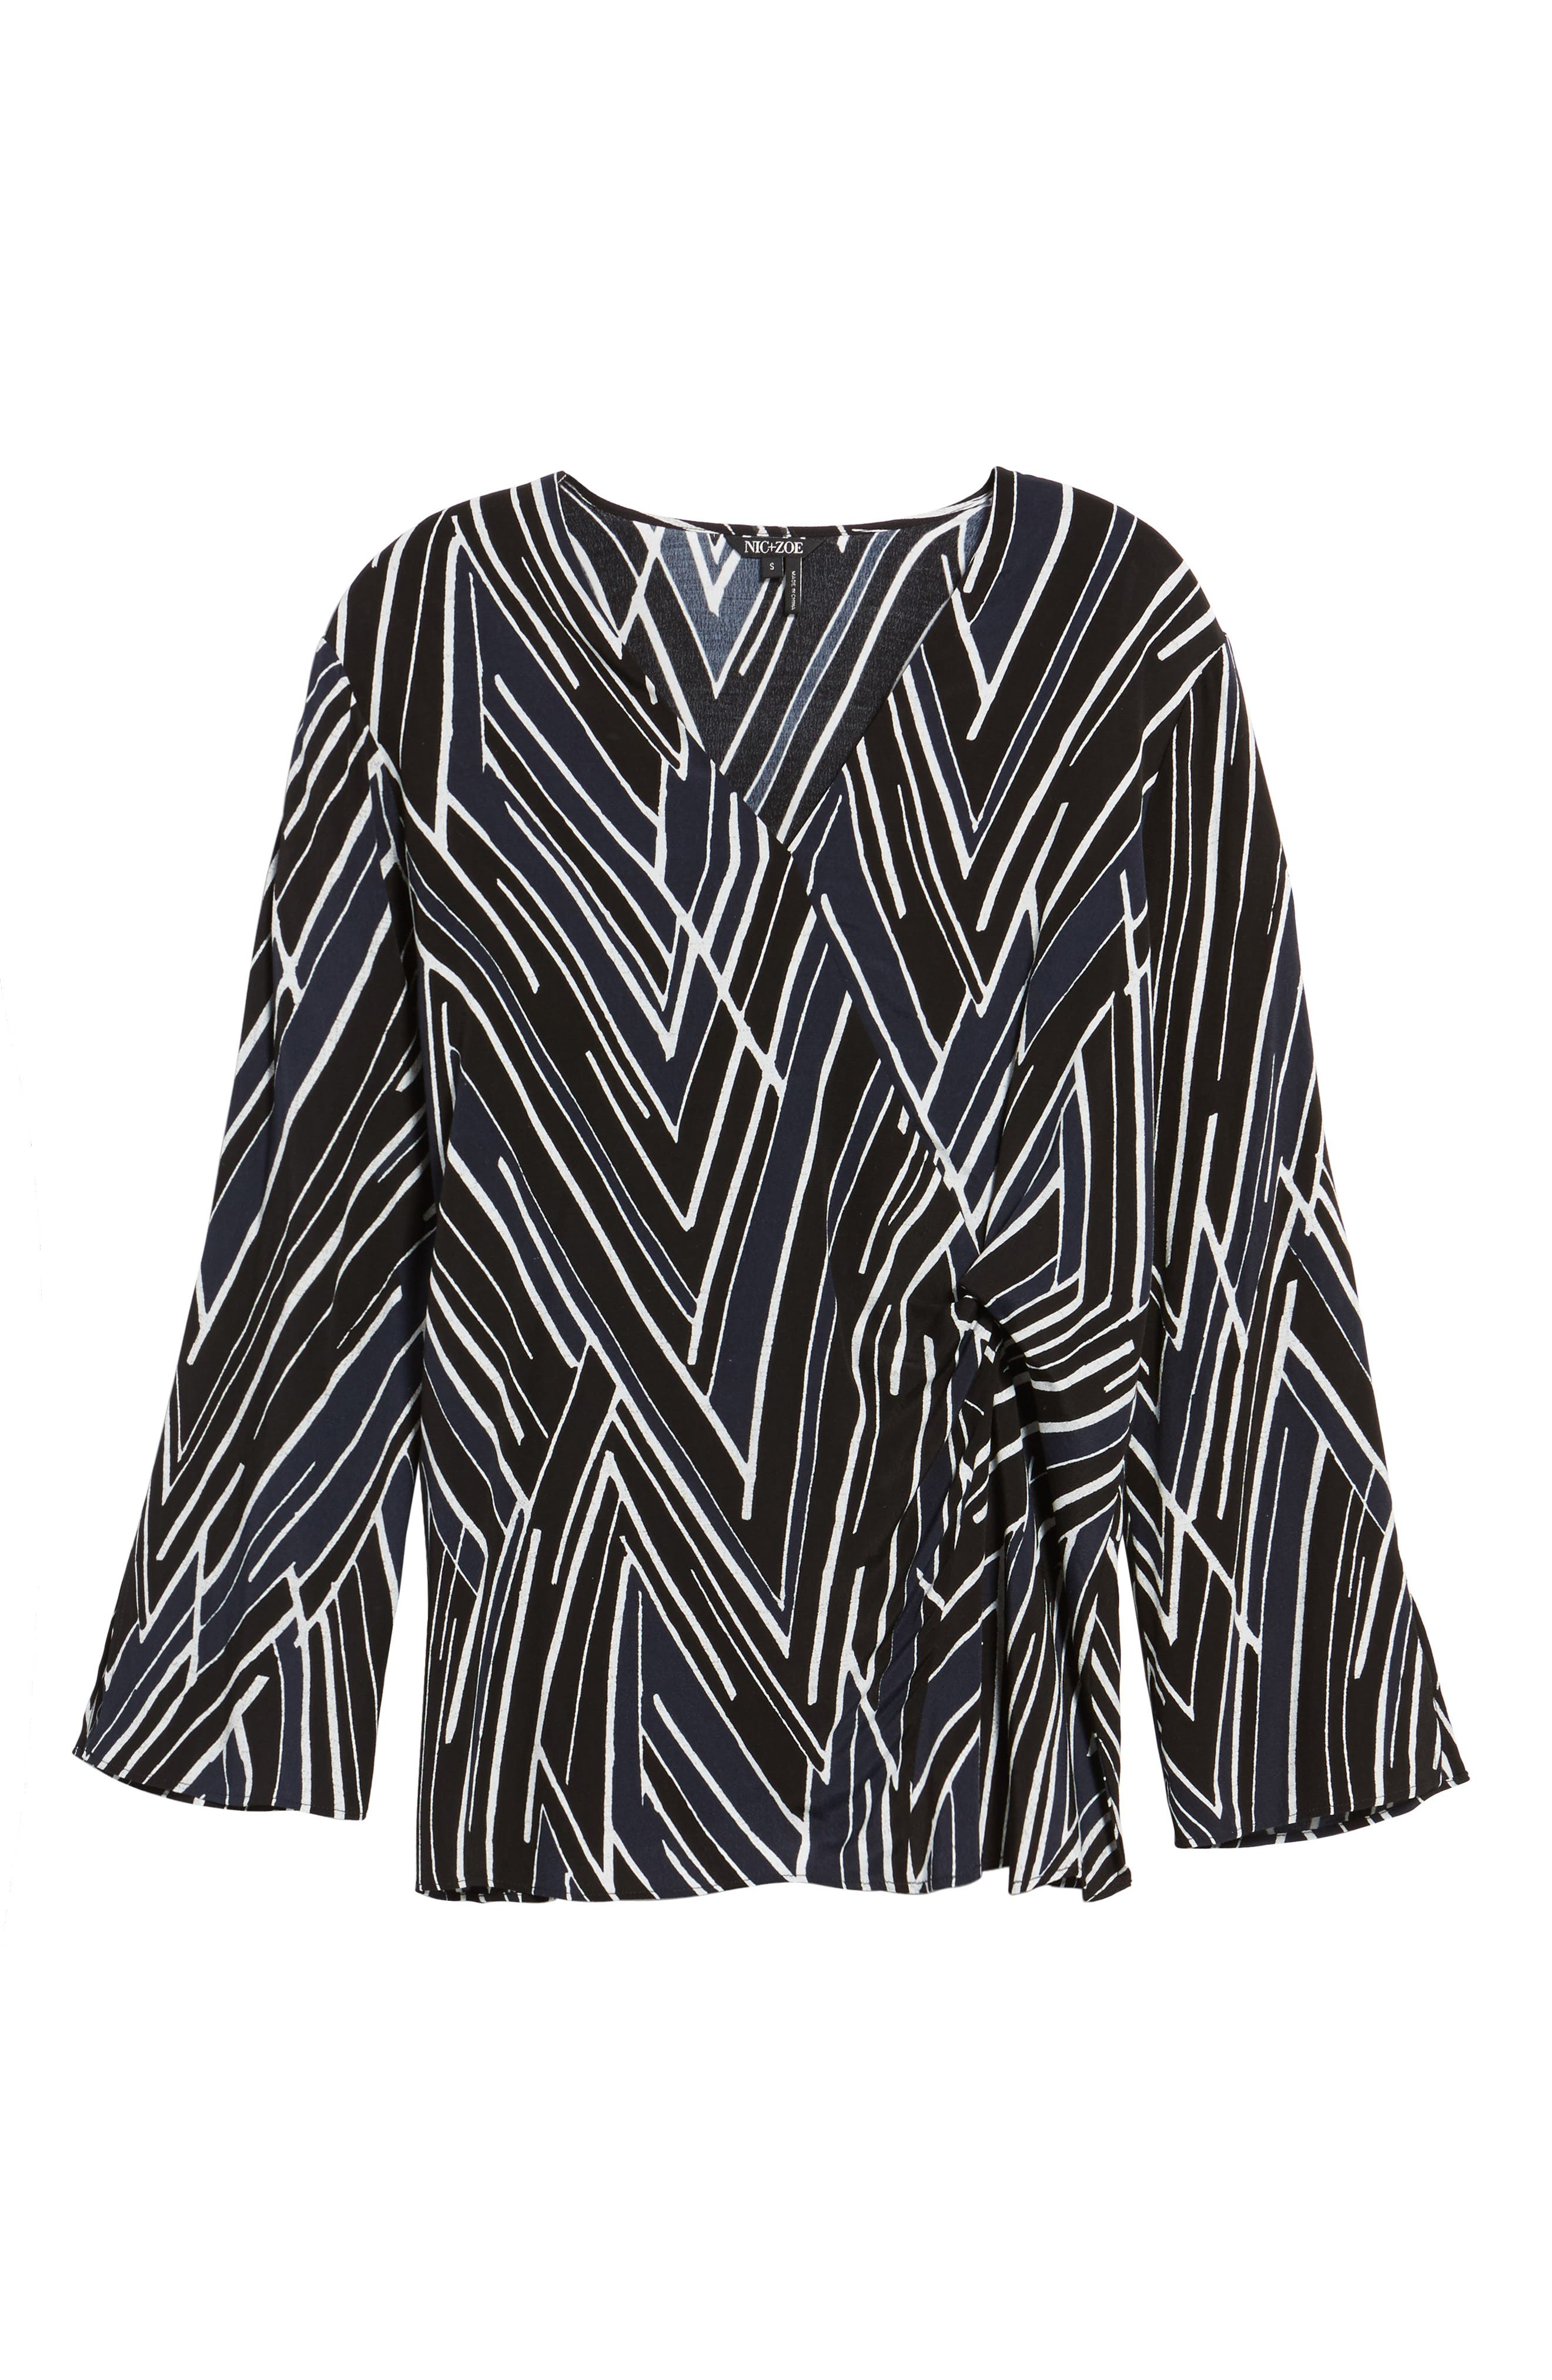 Bells and Whistles Top,                             Alternate thumbnail 6, color,